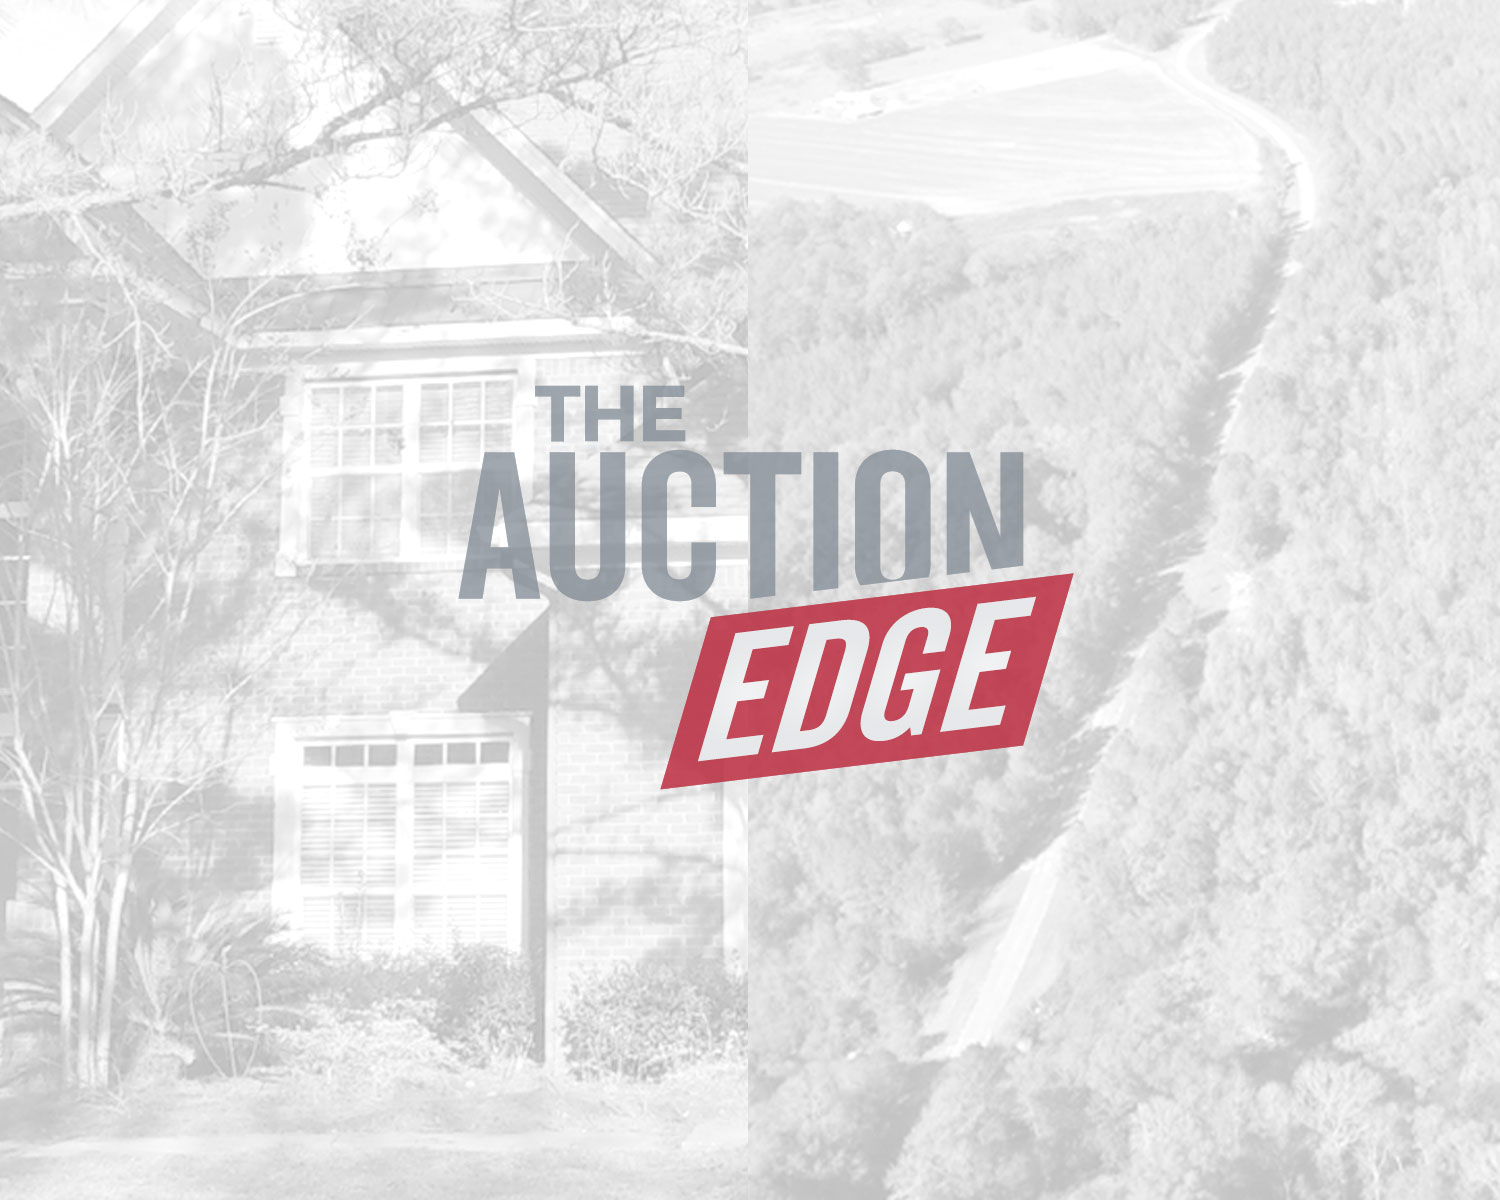 - If you would like to sell some commercial or real estate property, or even invest in it, consider THE AUCTION EDGE.